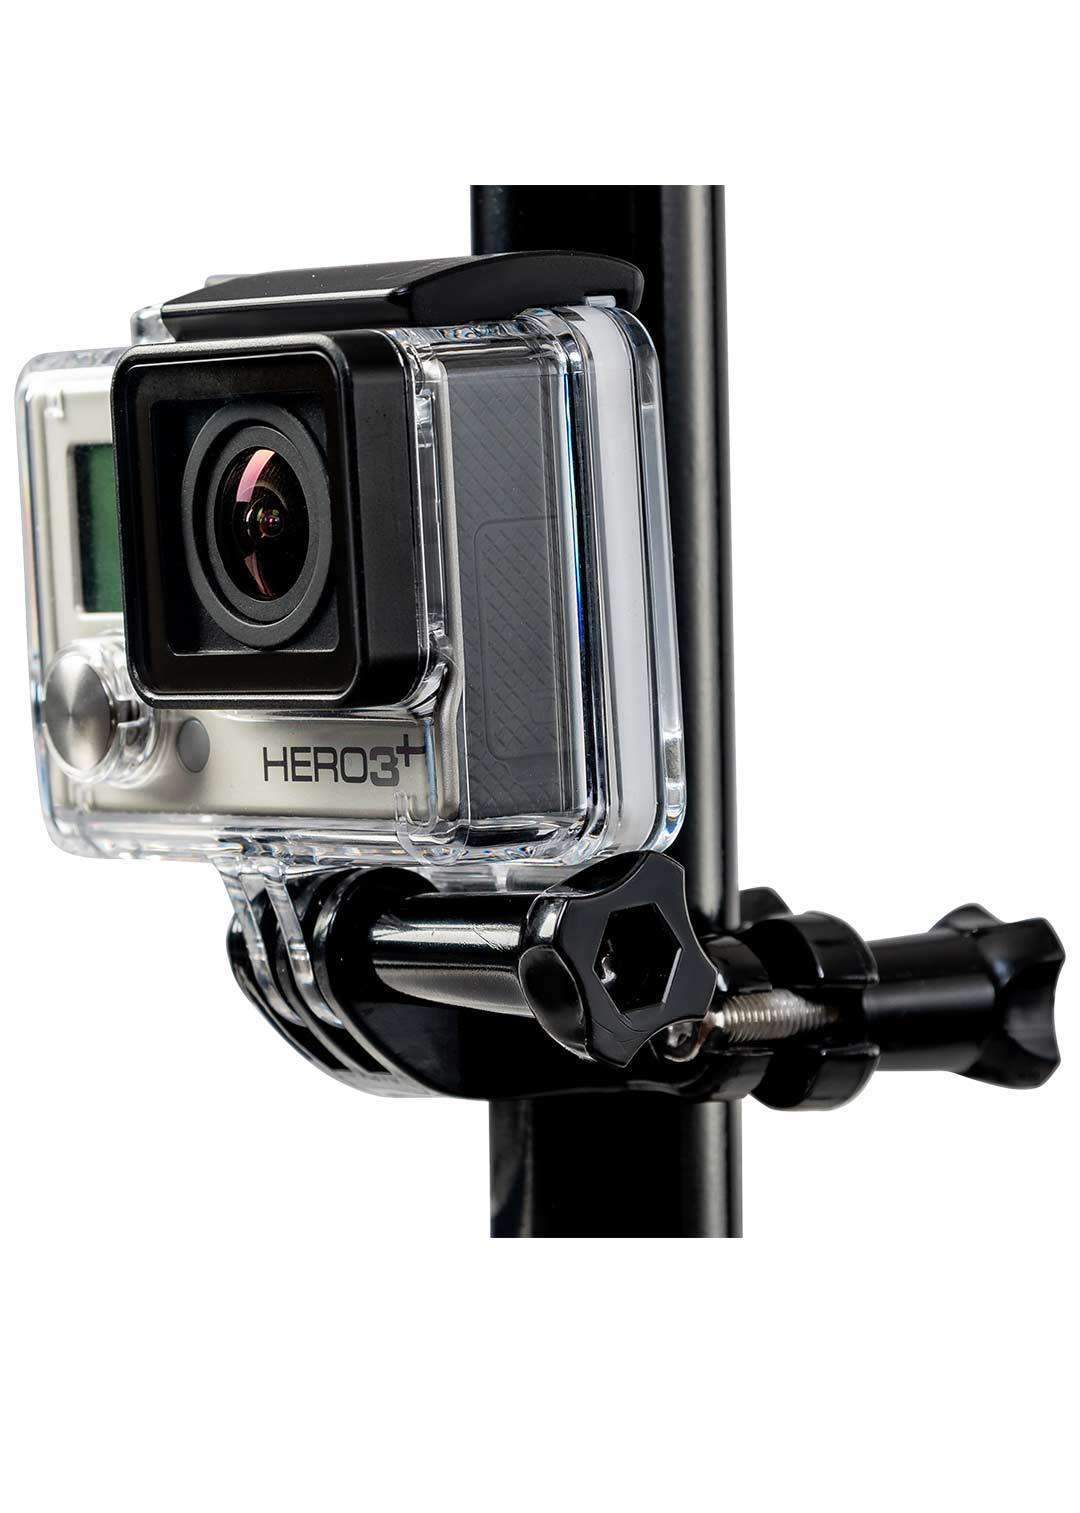 easily add a gopro